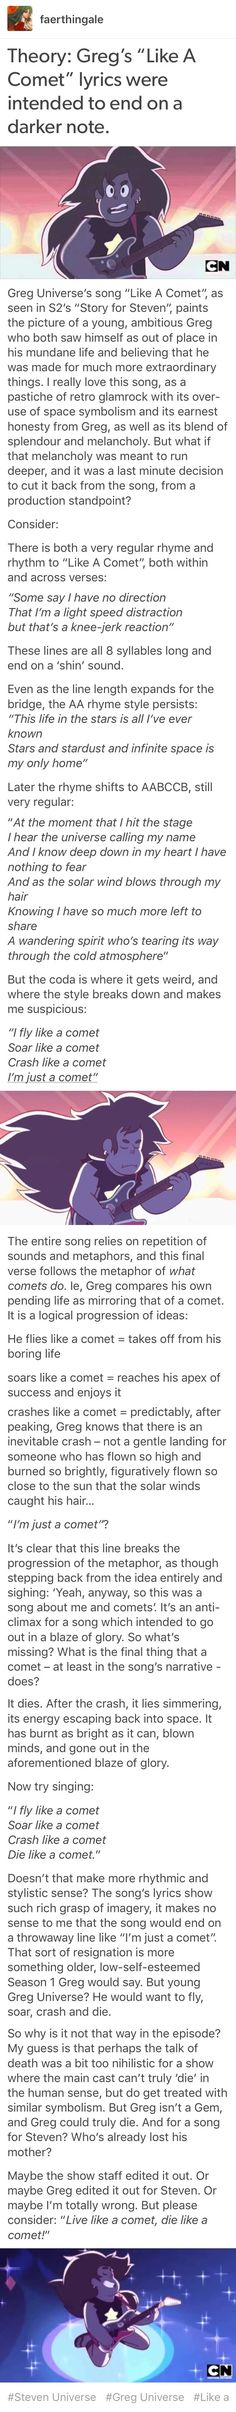 This is an interesting theory. This is one of my favorite songs from the show :)